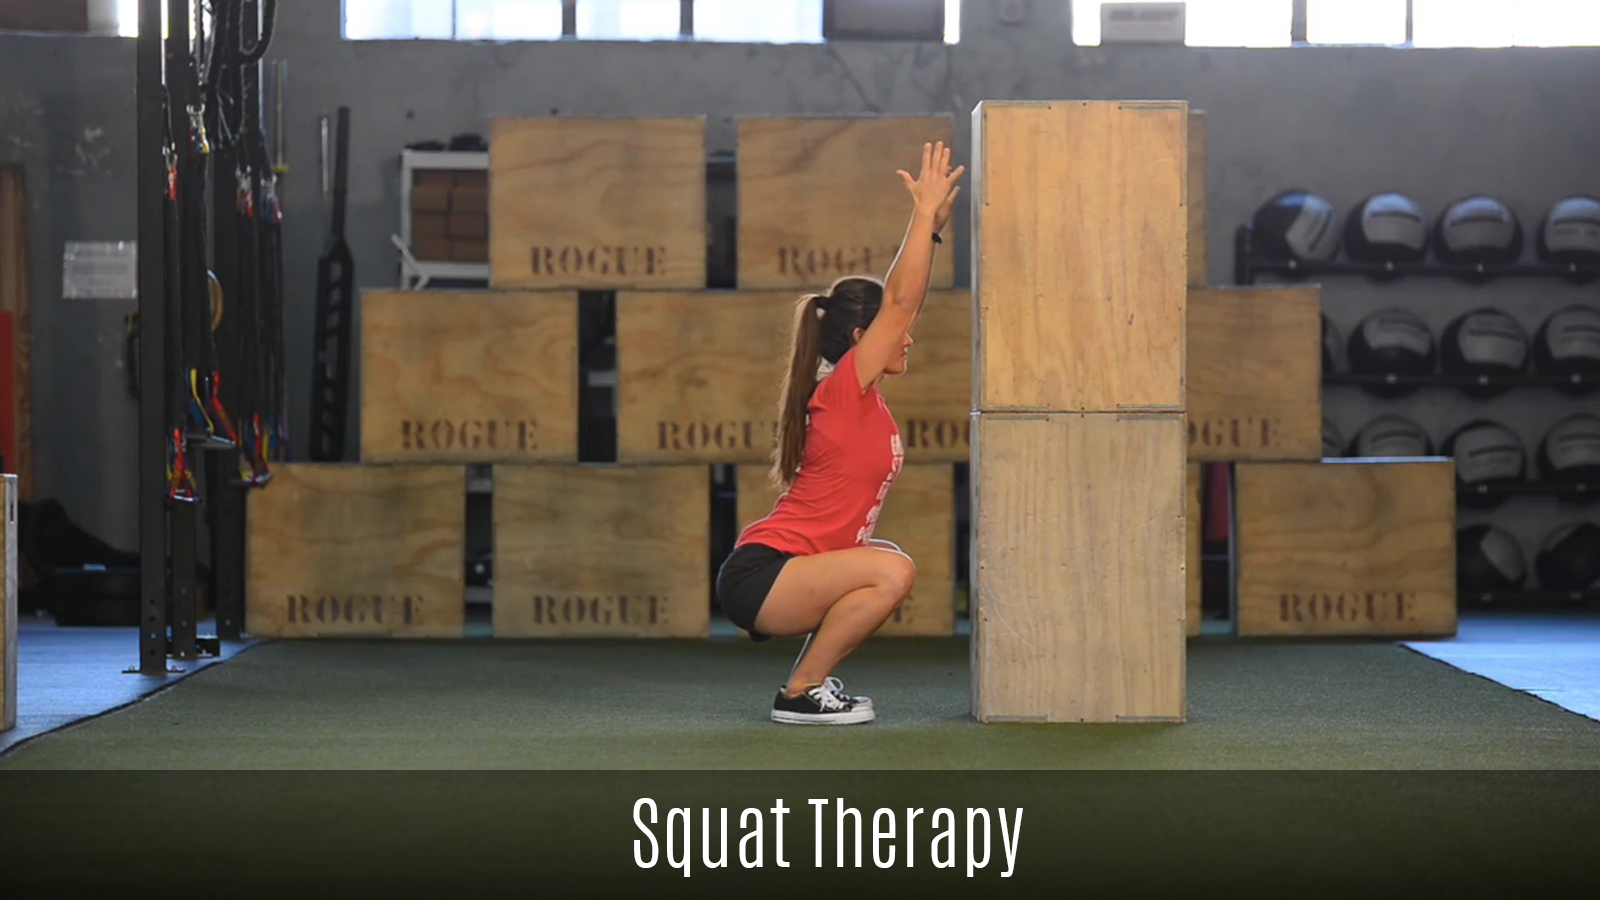 squat therapy movement demo using boxes